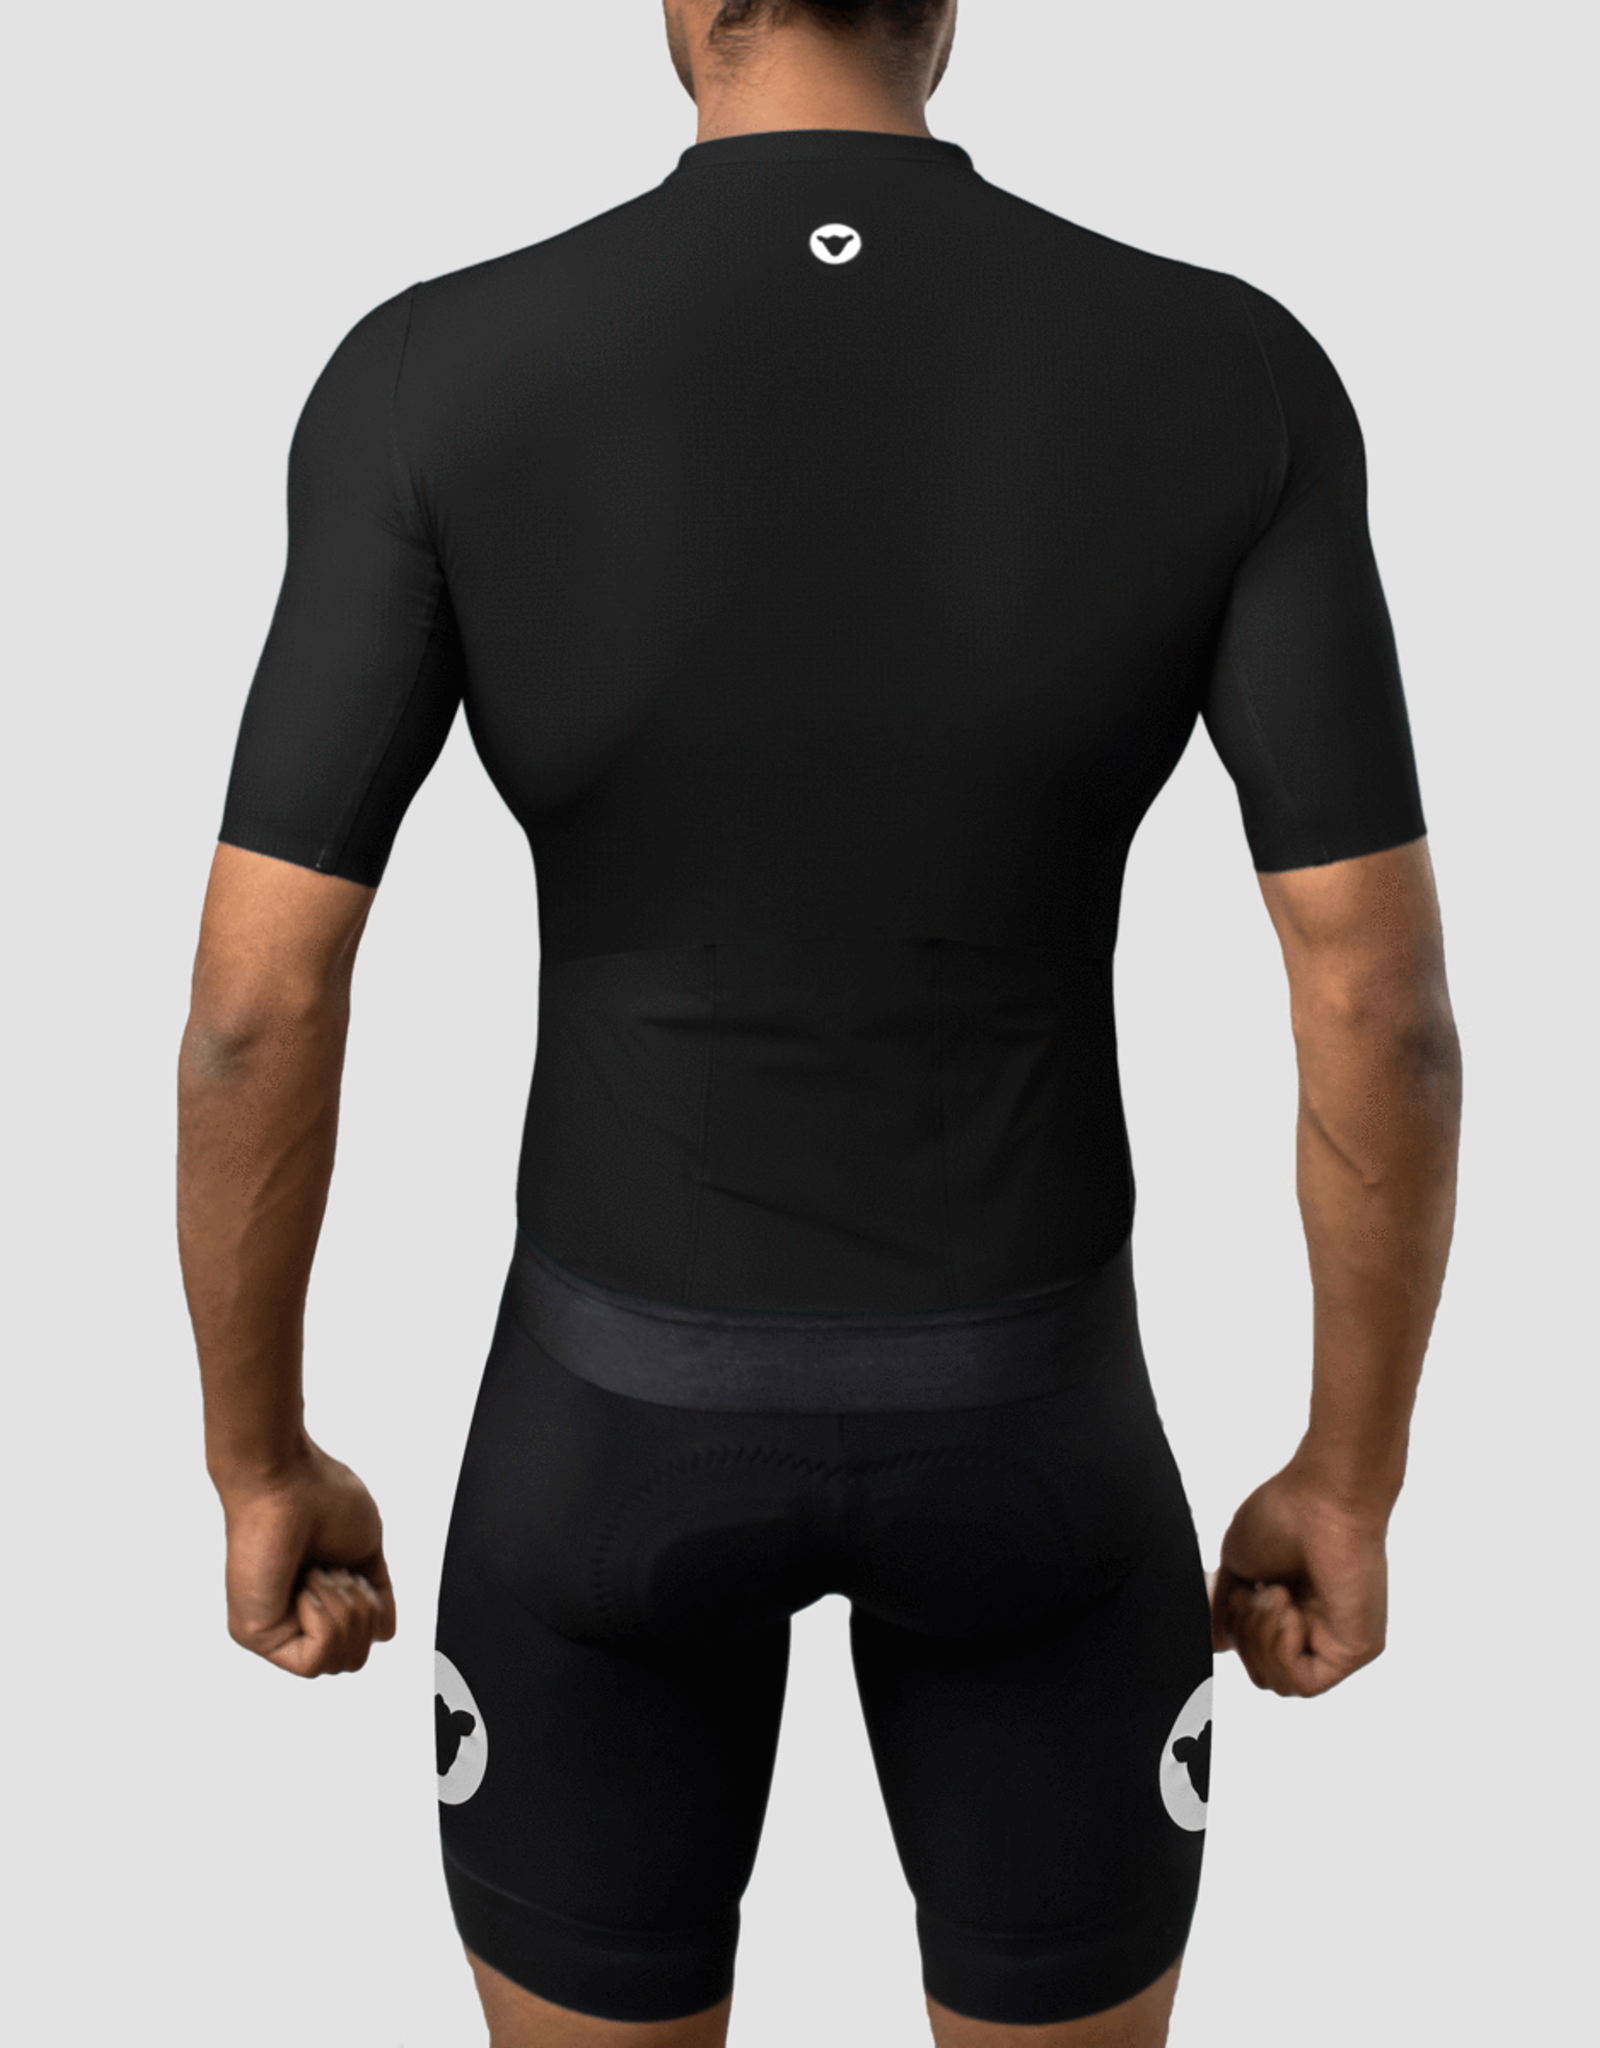 Black Sheep Cycling Men's Racing Climbers jersey - Black